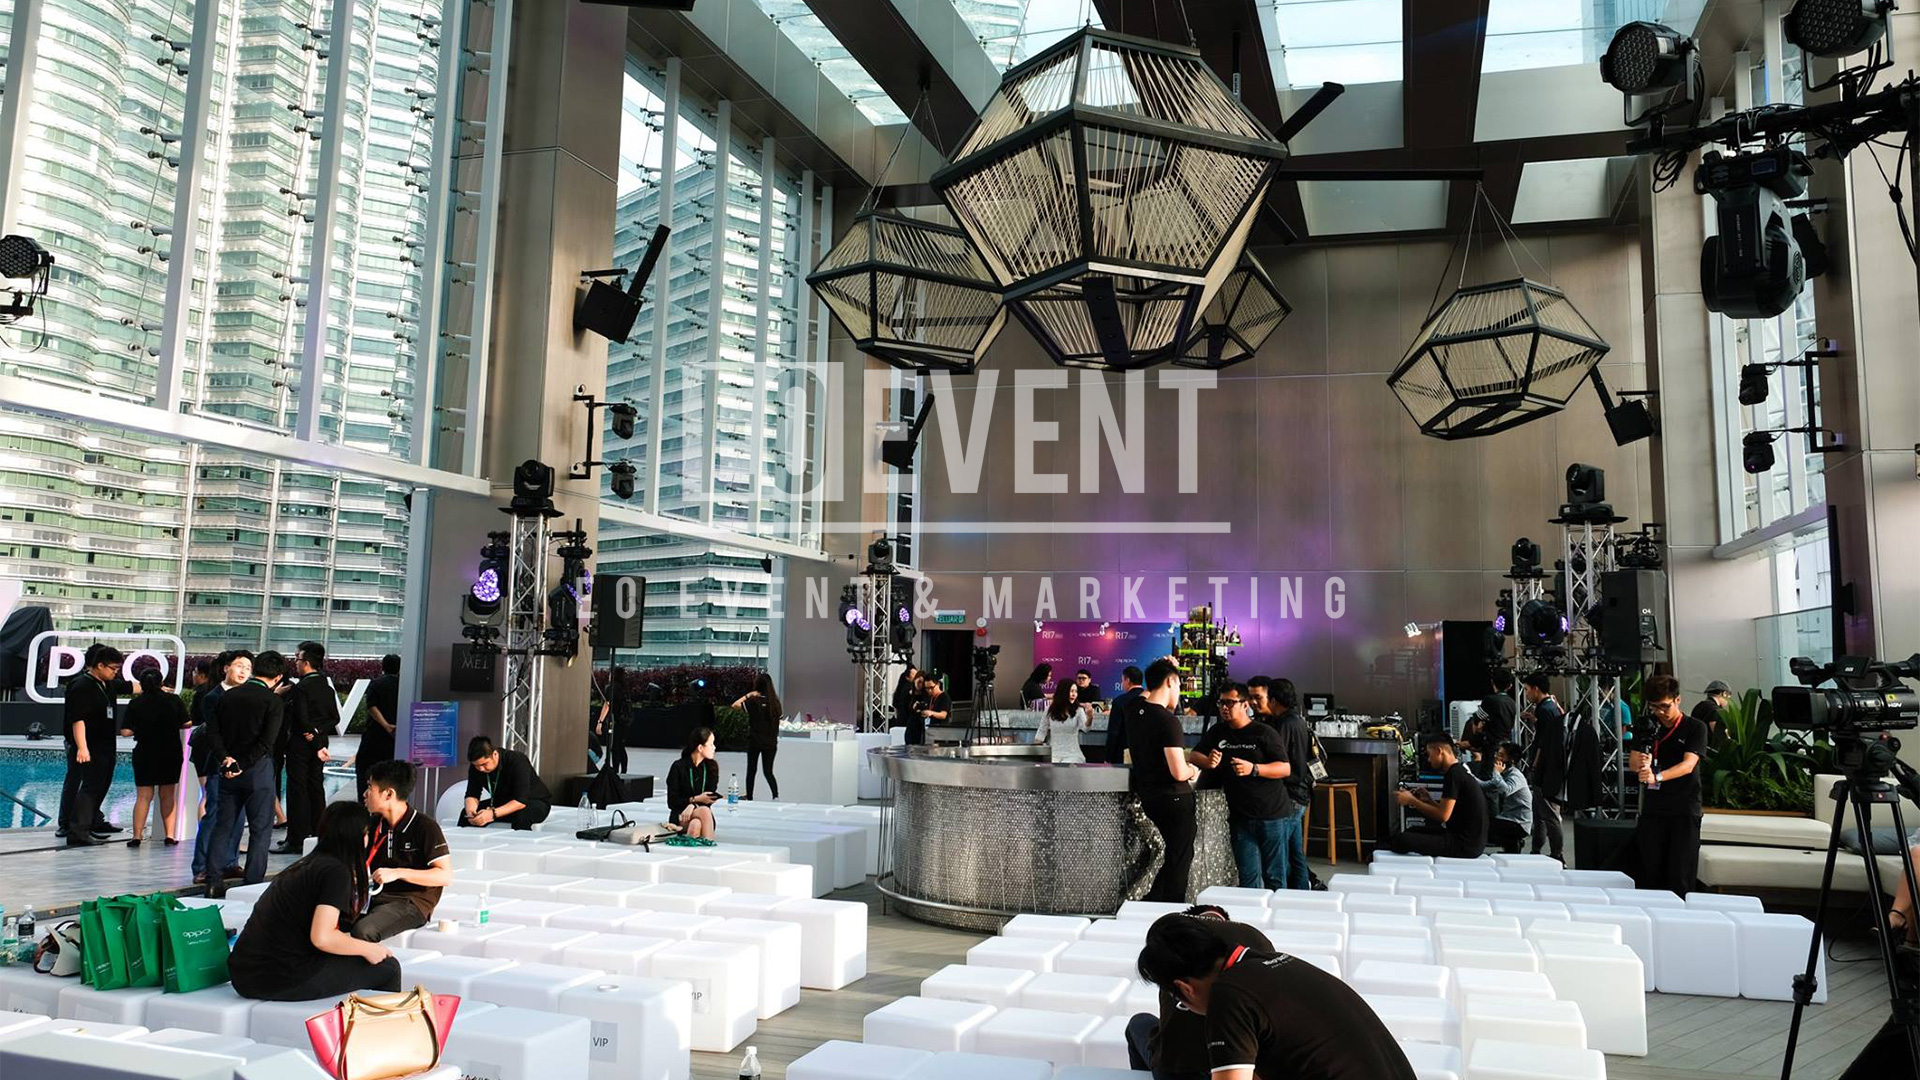 EO Event ramps up services; pledges to provide the best event management in Malaysia